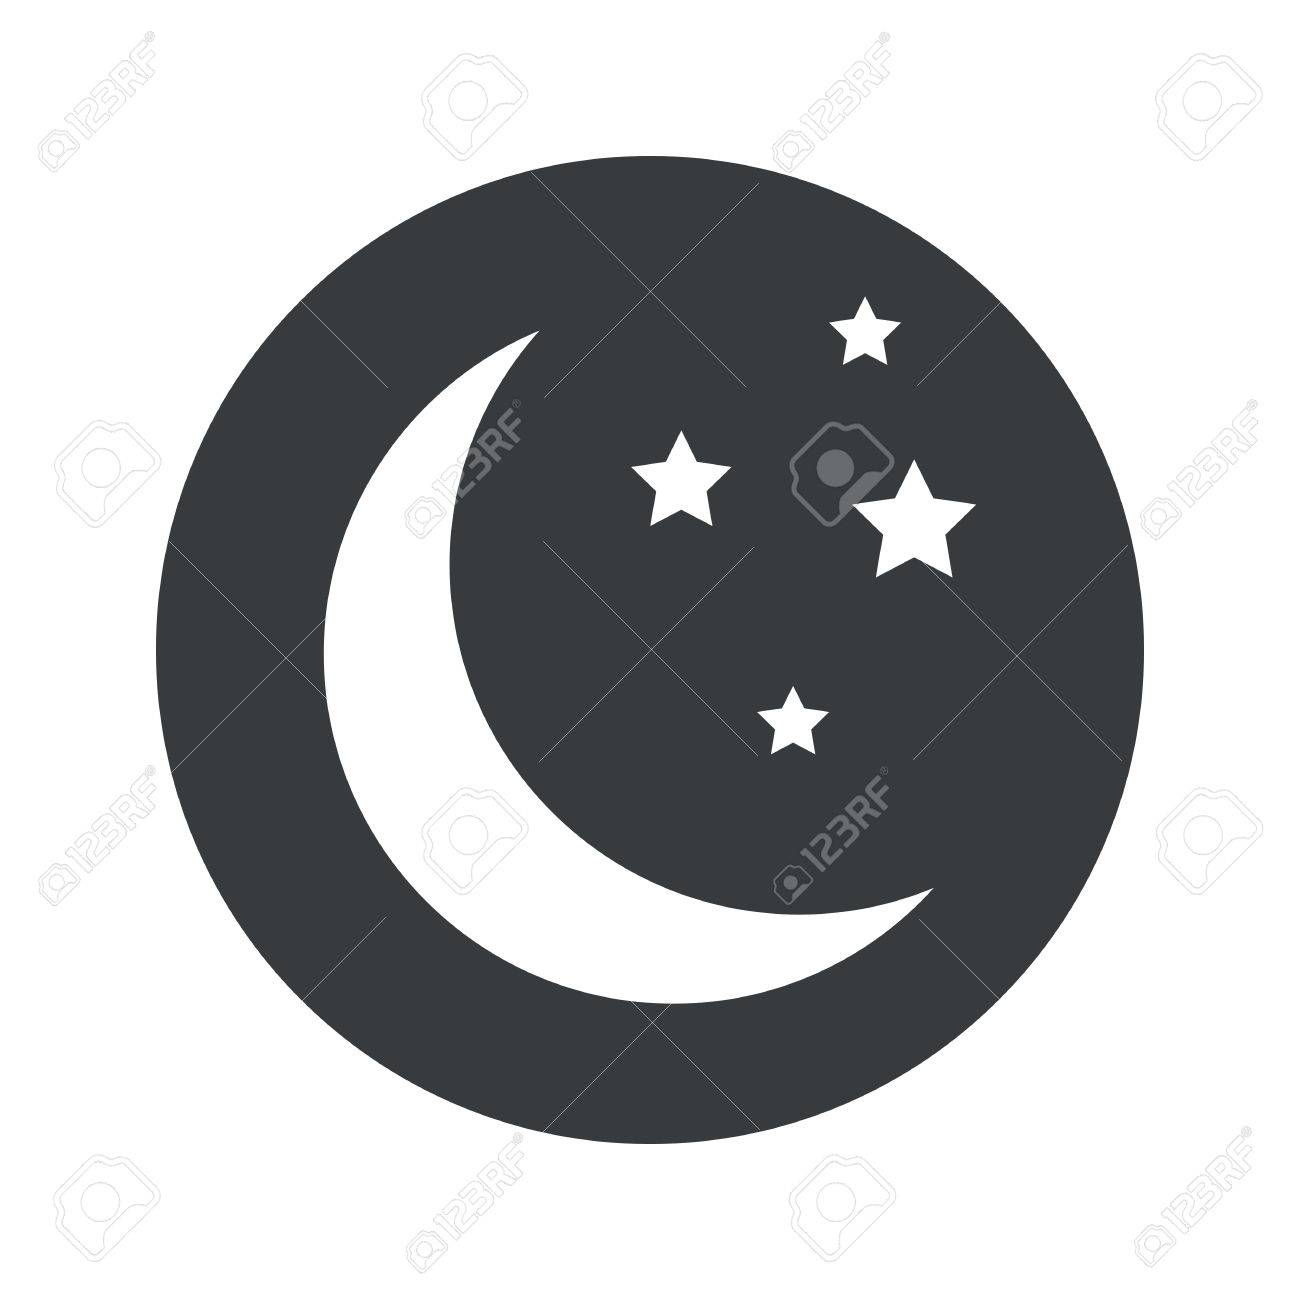 Image of crescent moon and stars in black circle isolated on image of crescent moon and stars in black circle isolated on white stock vector biocorpaavc Gallery